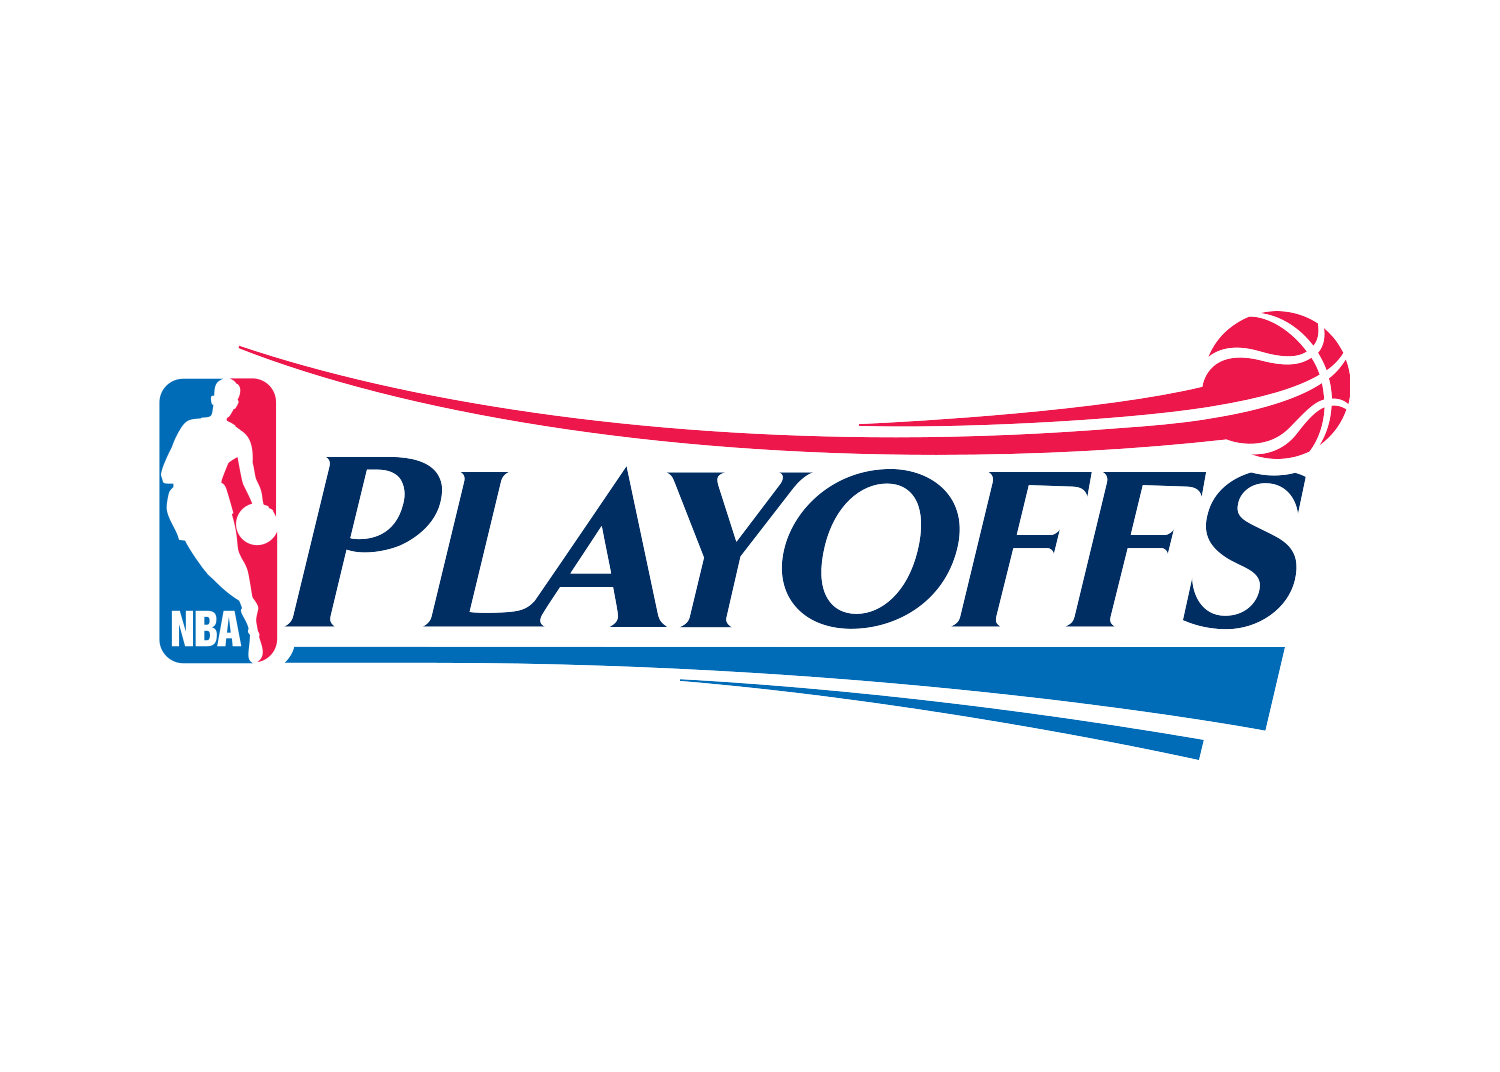 Nba Playoffs Showing Signs Of Rare Momentum Sports Media Watch